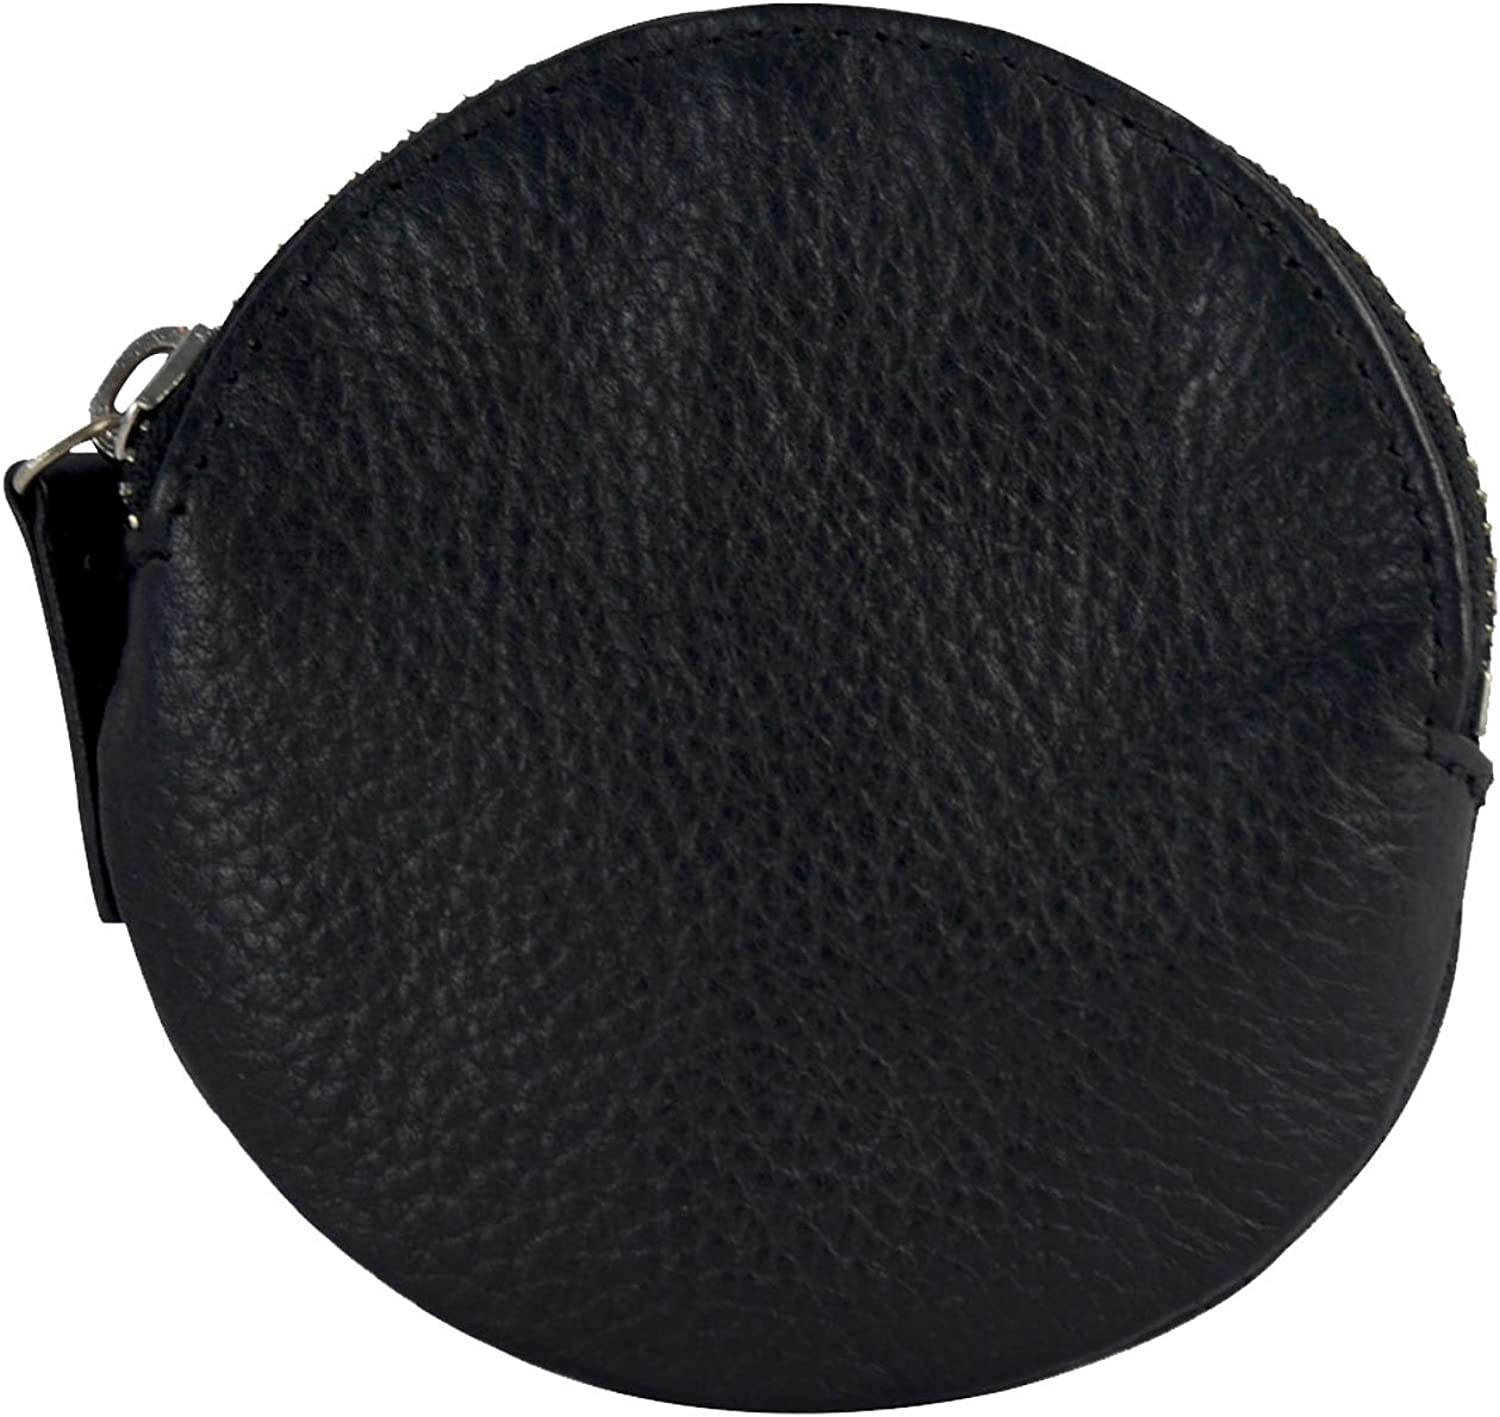 Genuine Leather Round Coin Pouch Change Purse with Zipper, Black